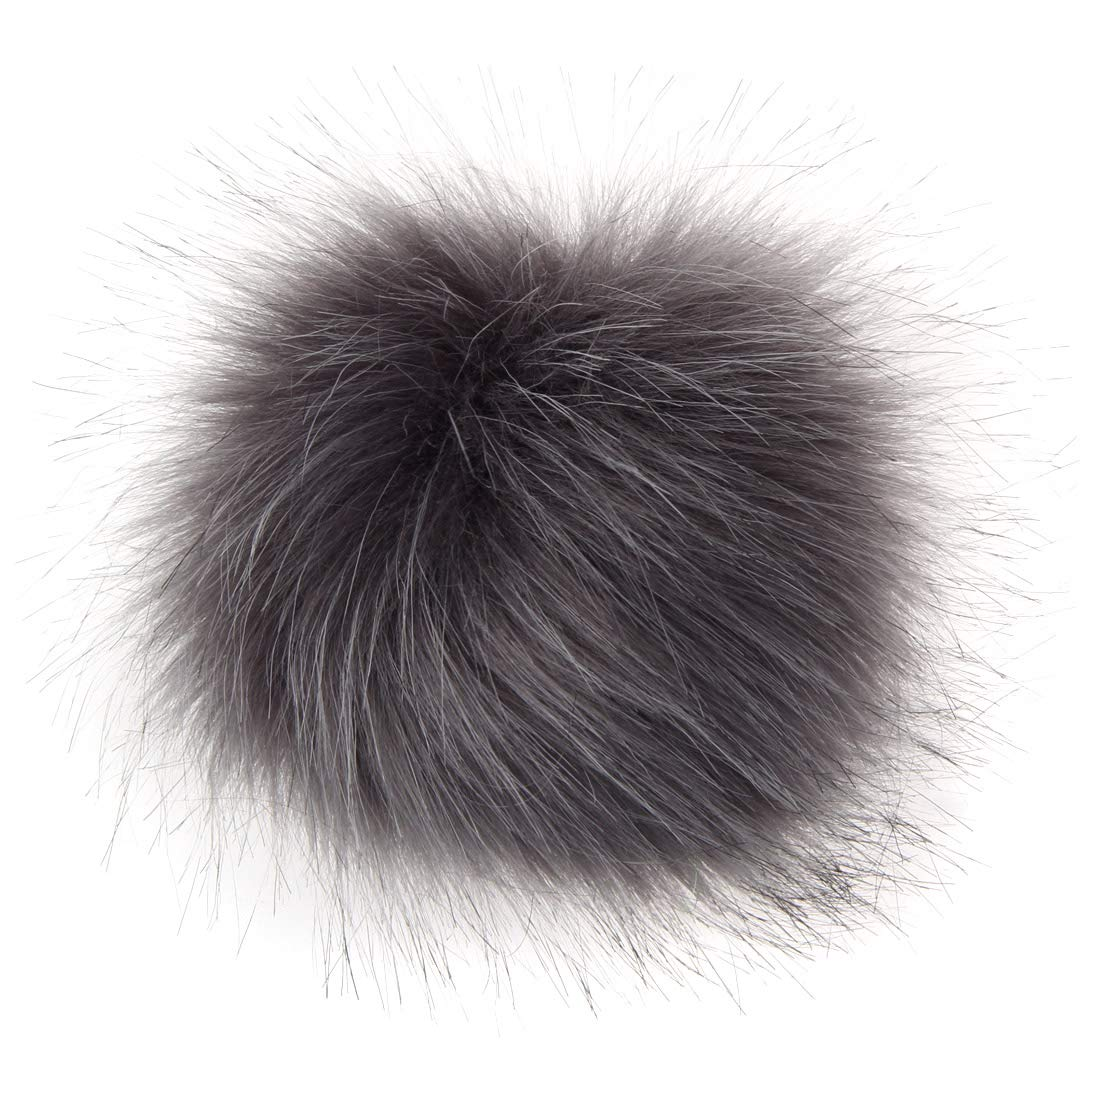 DIY 12 pcs Faux Fox Fur Fluffy Pompom Ball with Elastic Cord for Hats Beanies Shoes Scarves Bag Charms Accessories 4 inch A-Multi